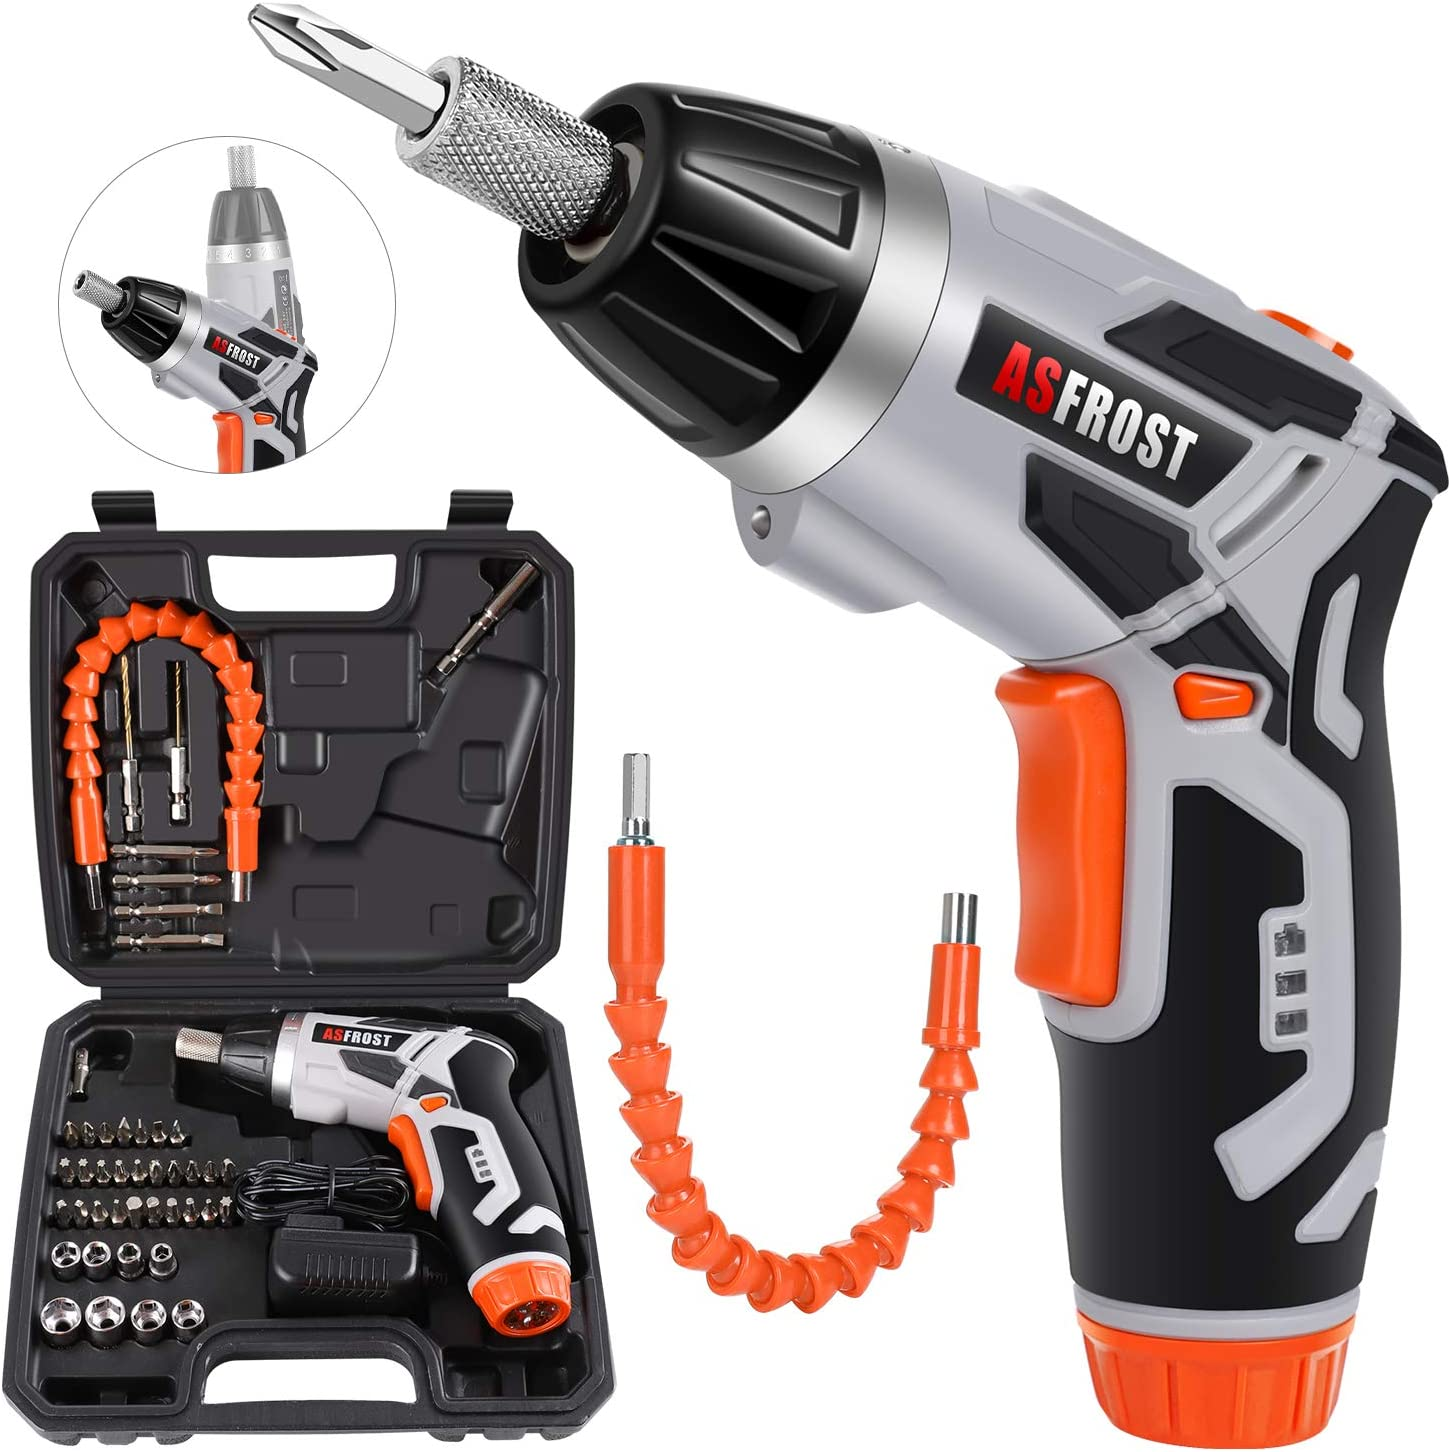 Cordless 2021new shipping free Electric Year-end gift Screwdriver AsFrost 3.6V Rechargeable 2000mAh